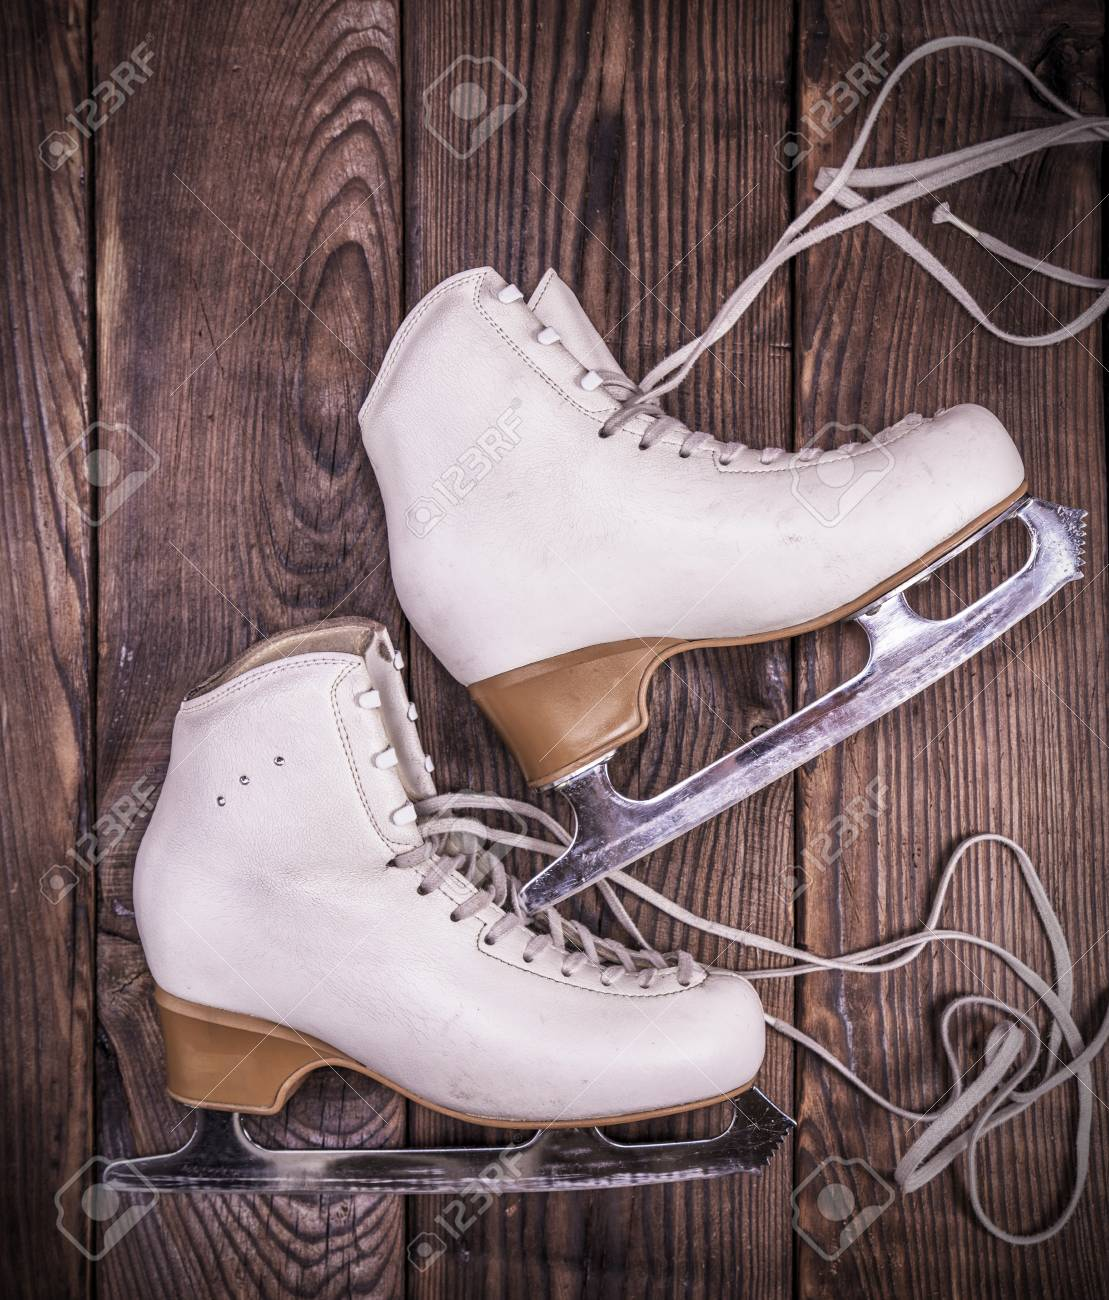 bbd74f315079b Female white leather skates for figure skating on a brown wooden..